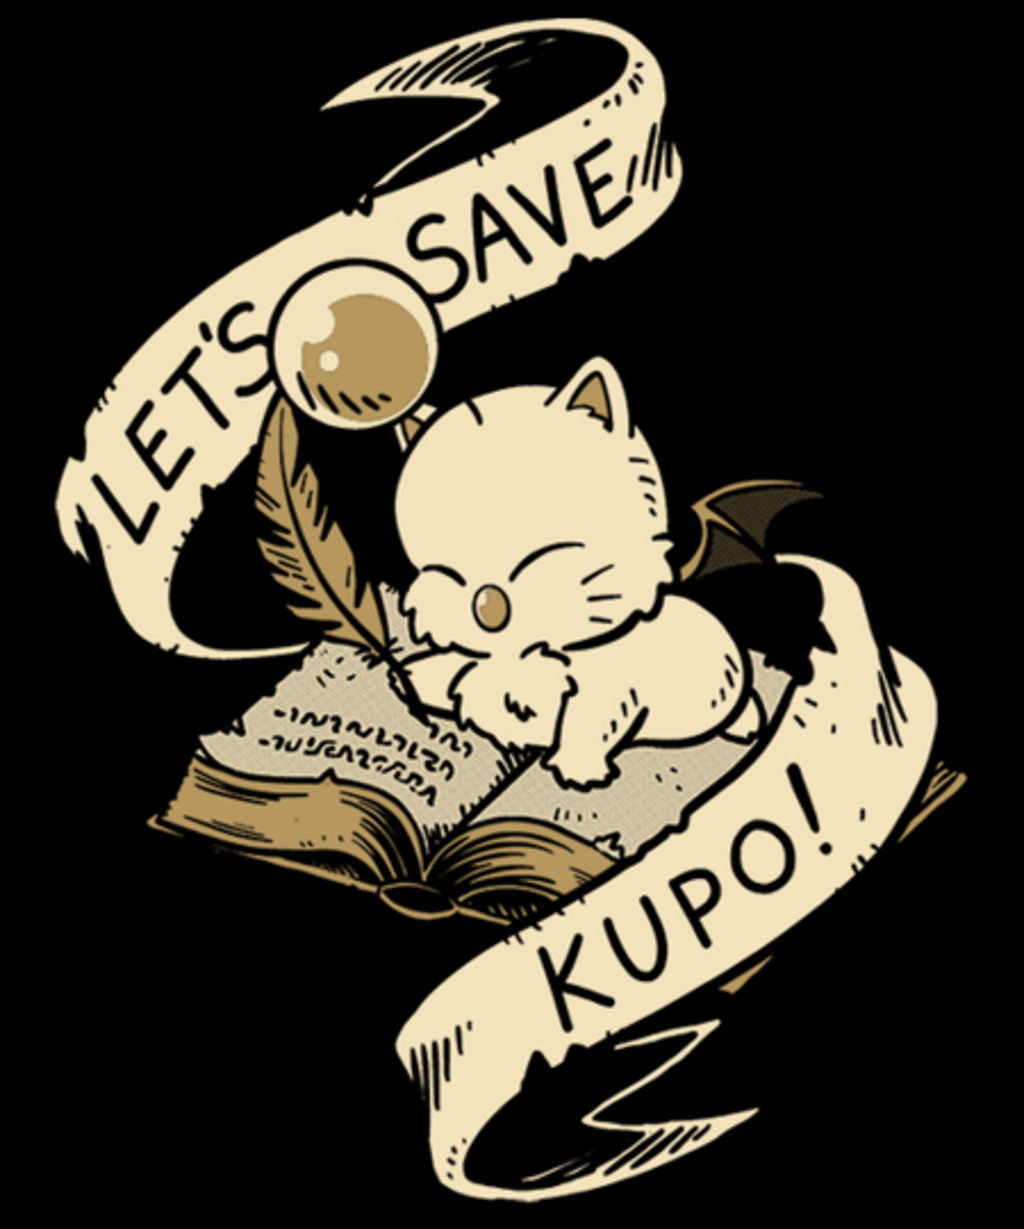 Qwertee: Let's save kupo!